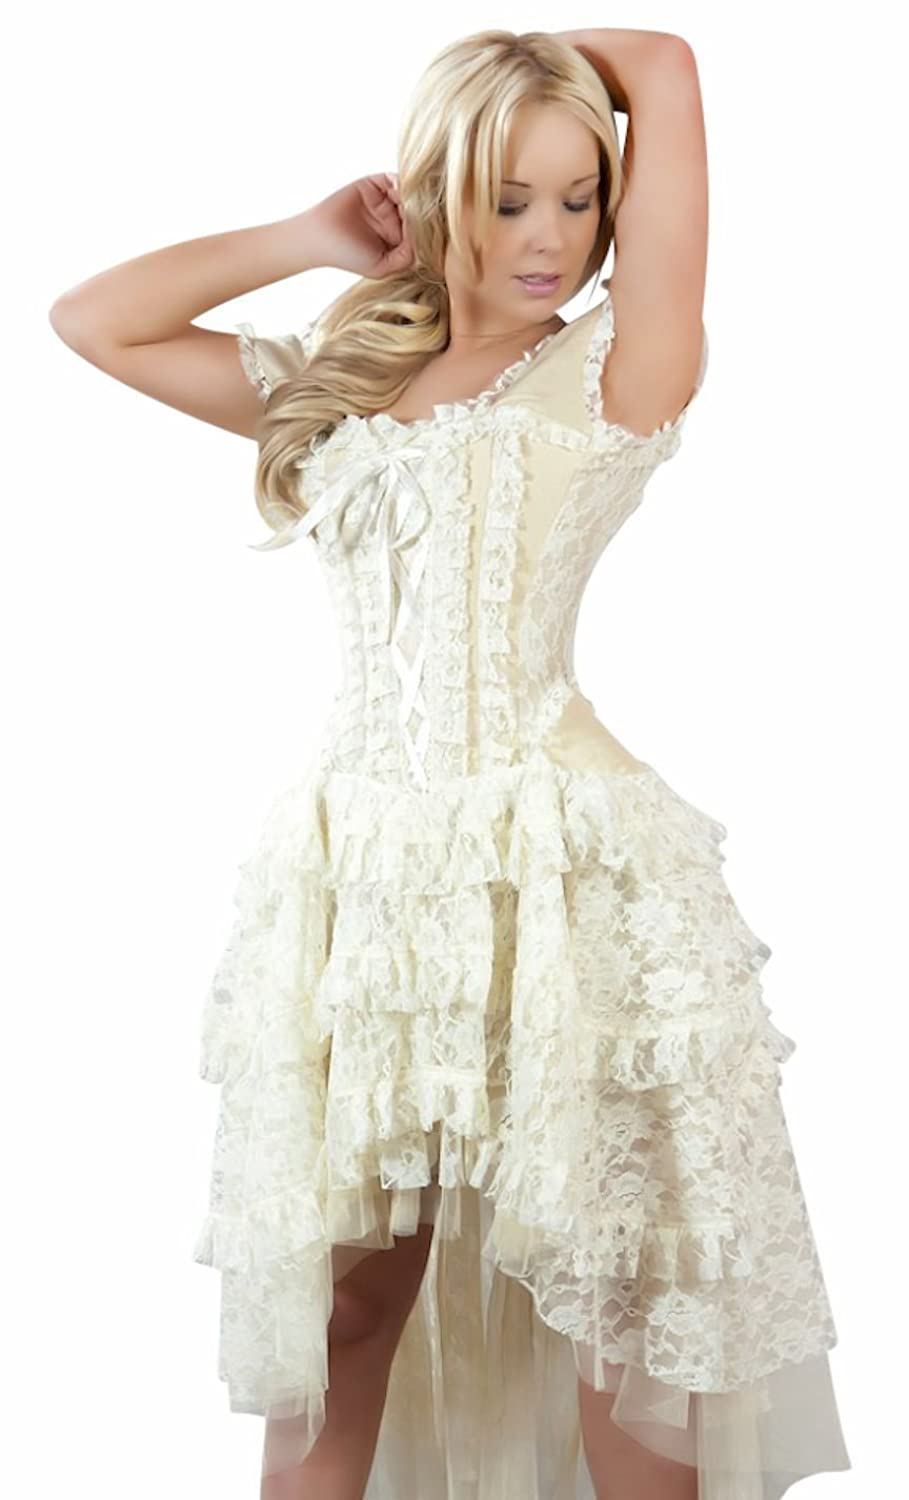 Vintage Style Wedding Dresses, Vintage Inspired Wedding Gowns Steampunk Corset Dress $139.99 AT vintagedancer.com